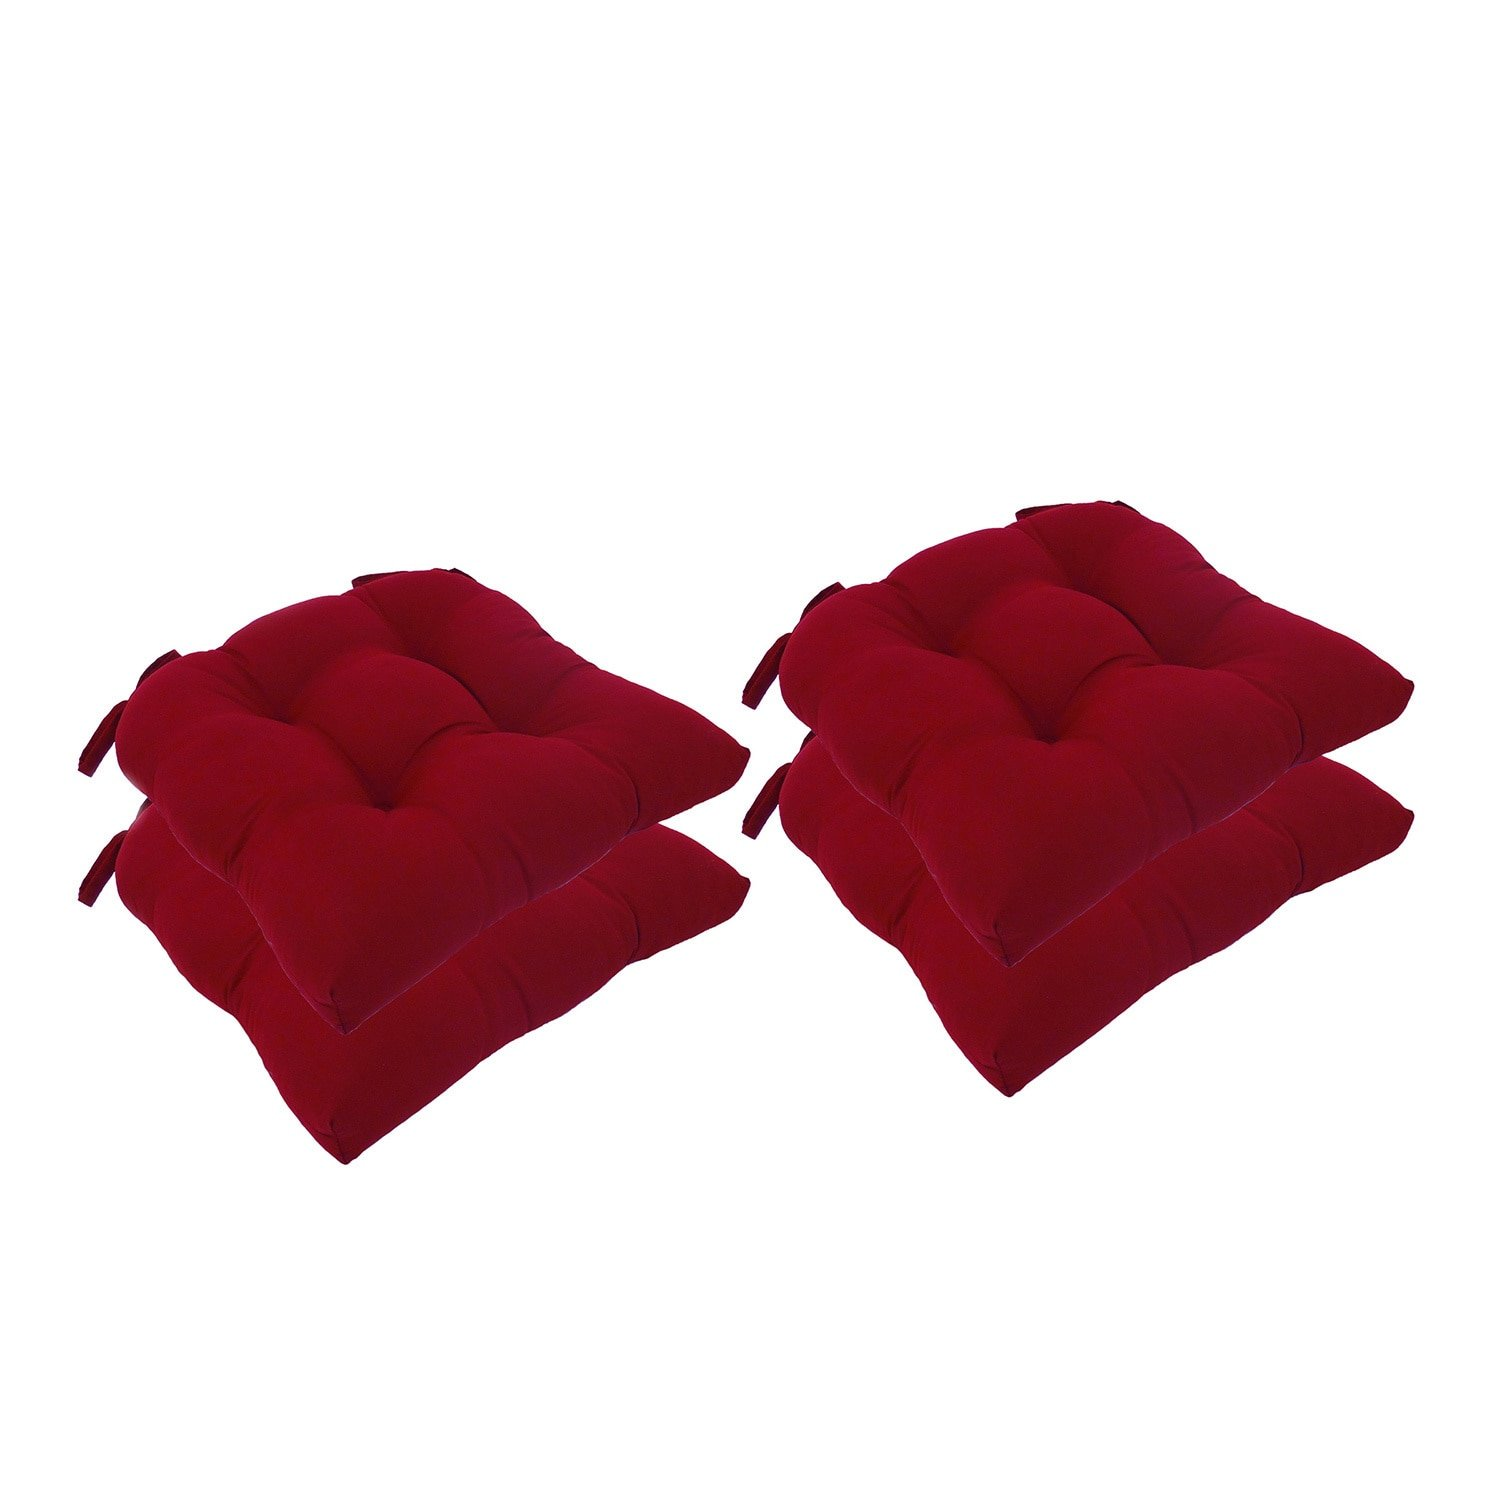 Essentials Micro Fiber Set of Four (4) Seat Cushions Barn Red-Comfortable, Indoor, Dining, Living Room, Kitchen, Office, Den, Washable, Fabric Ties Chair Pad, Piece